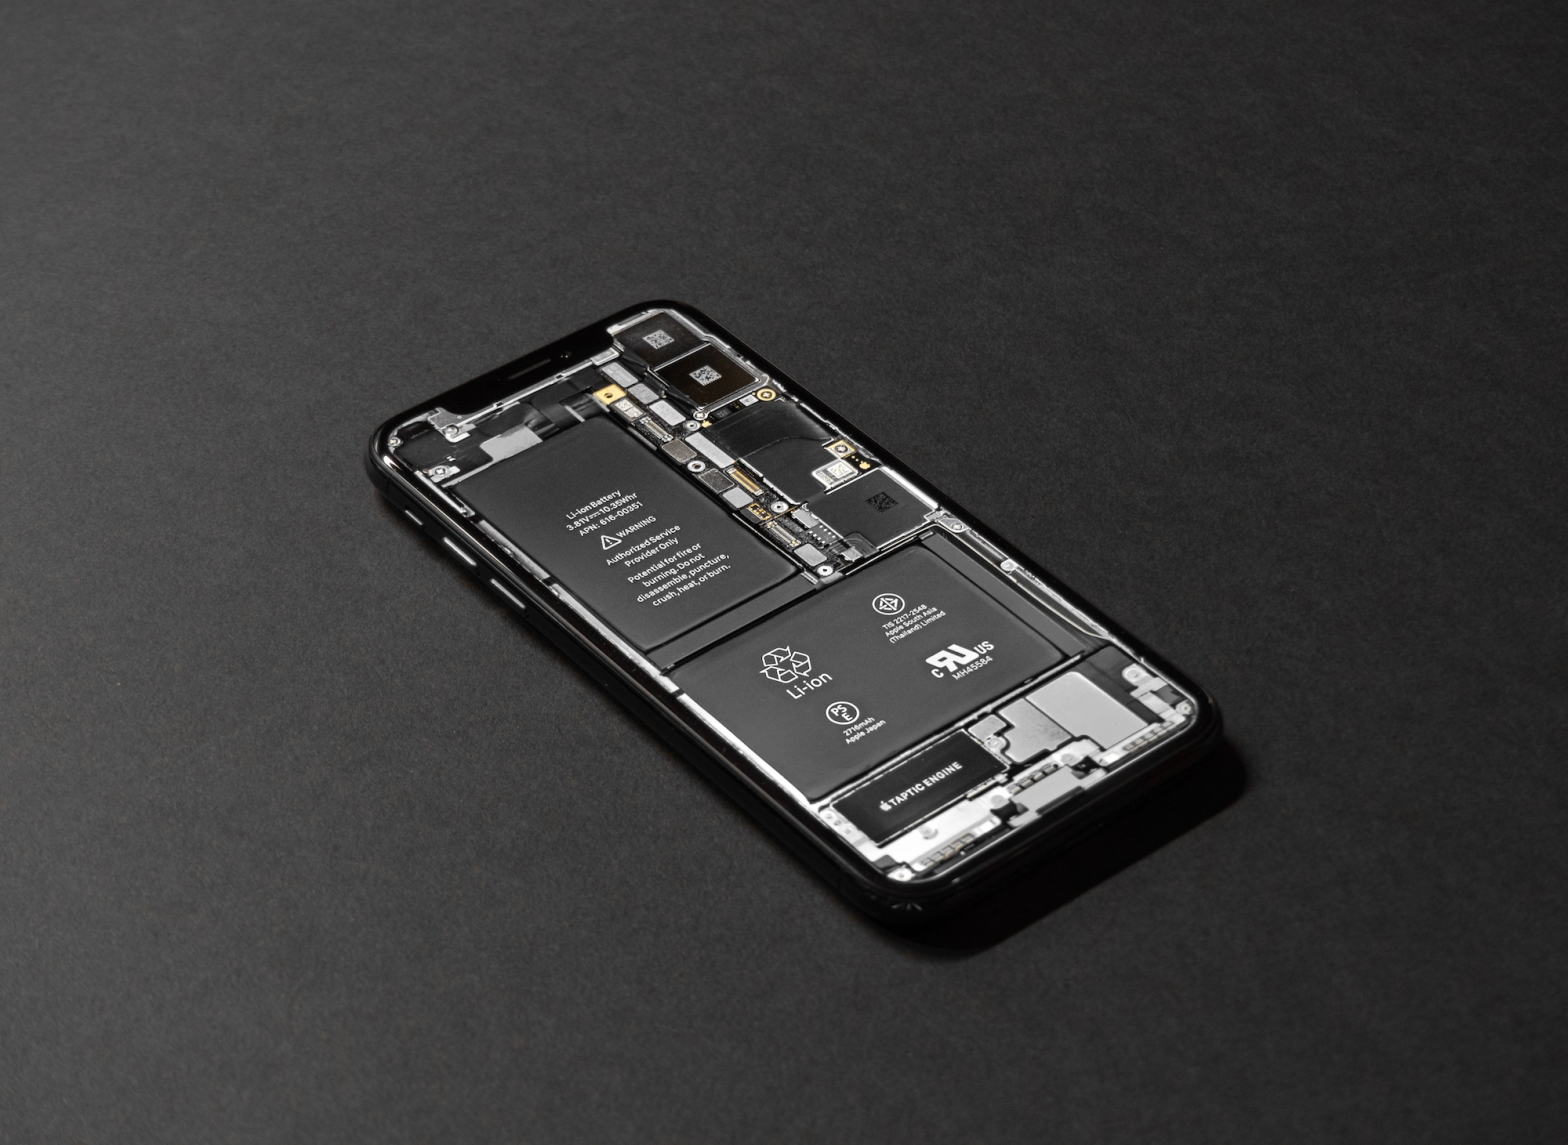 iPhone X innards with batteries showing